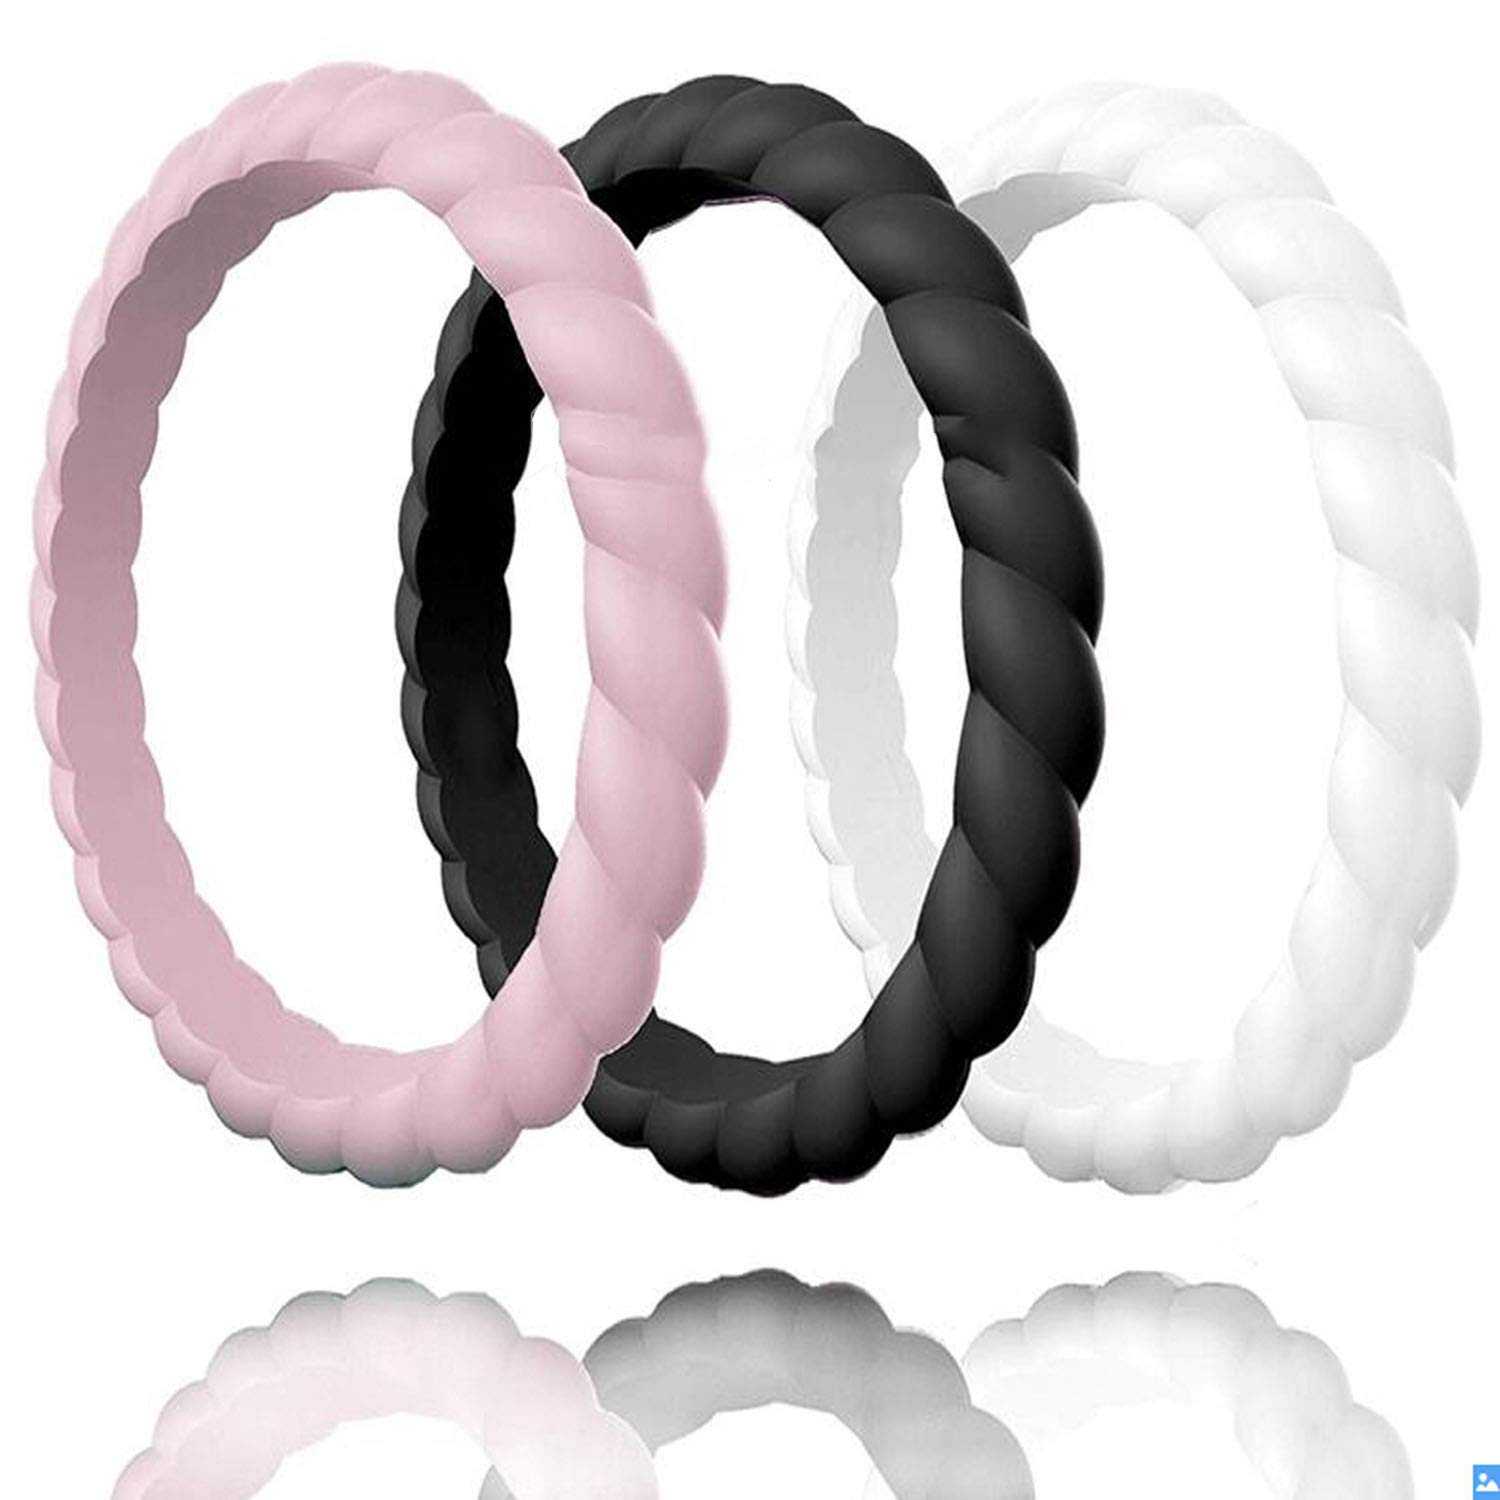 Ytb-home Silicone Rings Thin And Braided Hypoallergenic Flexible Twist Rubber Finger Ring For Women Wedding Rings,7,Gold